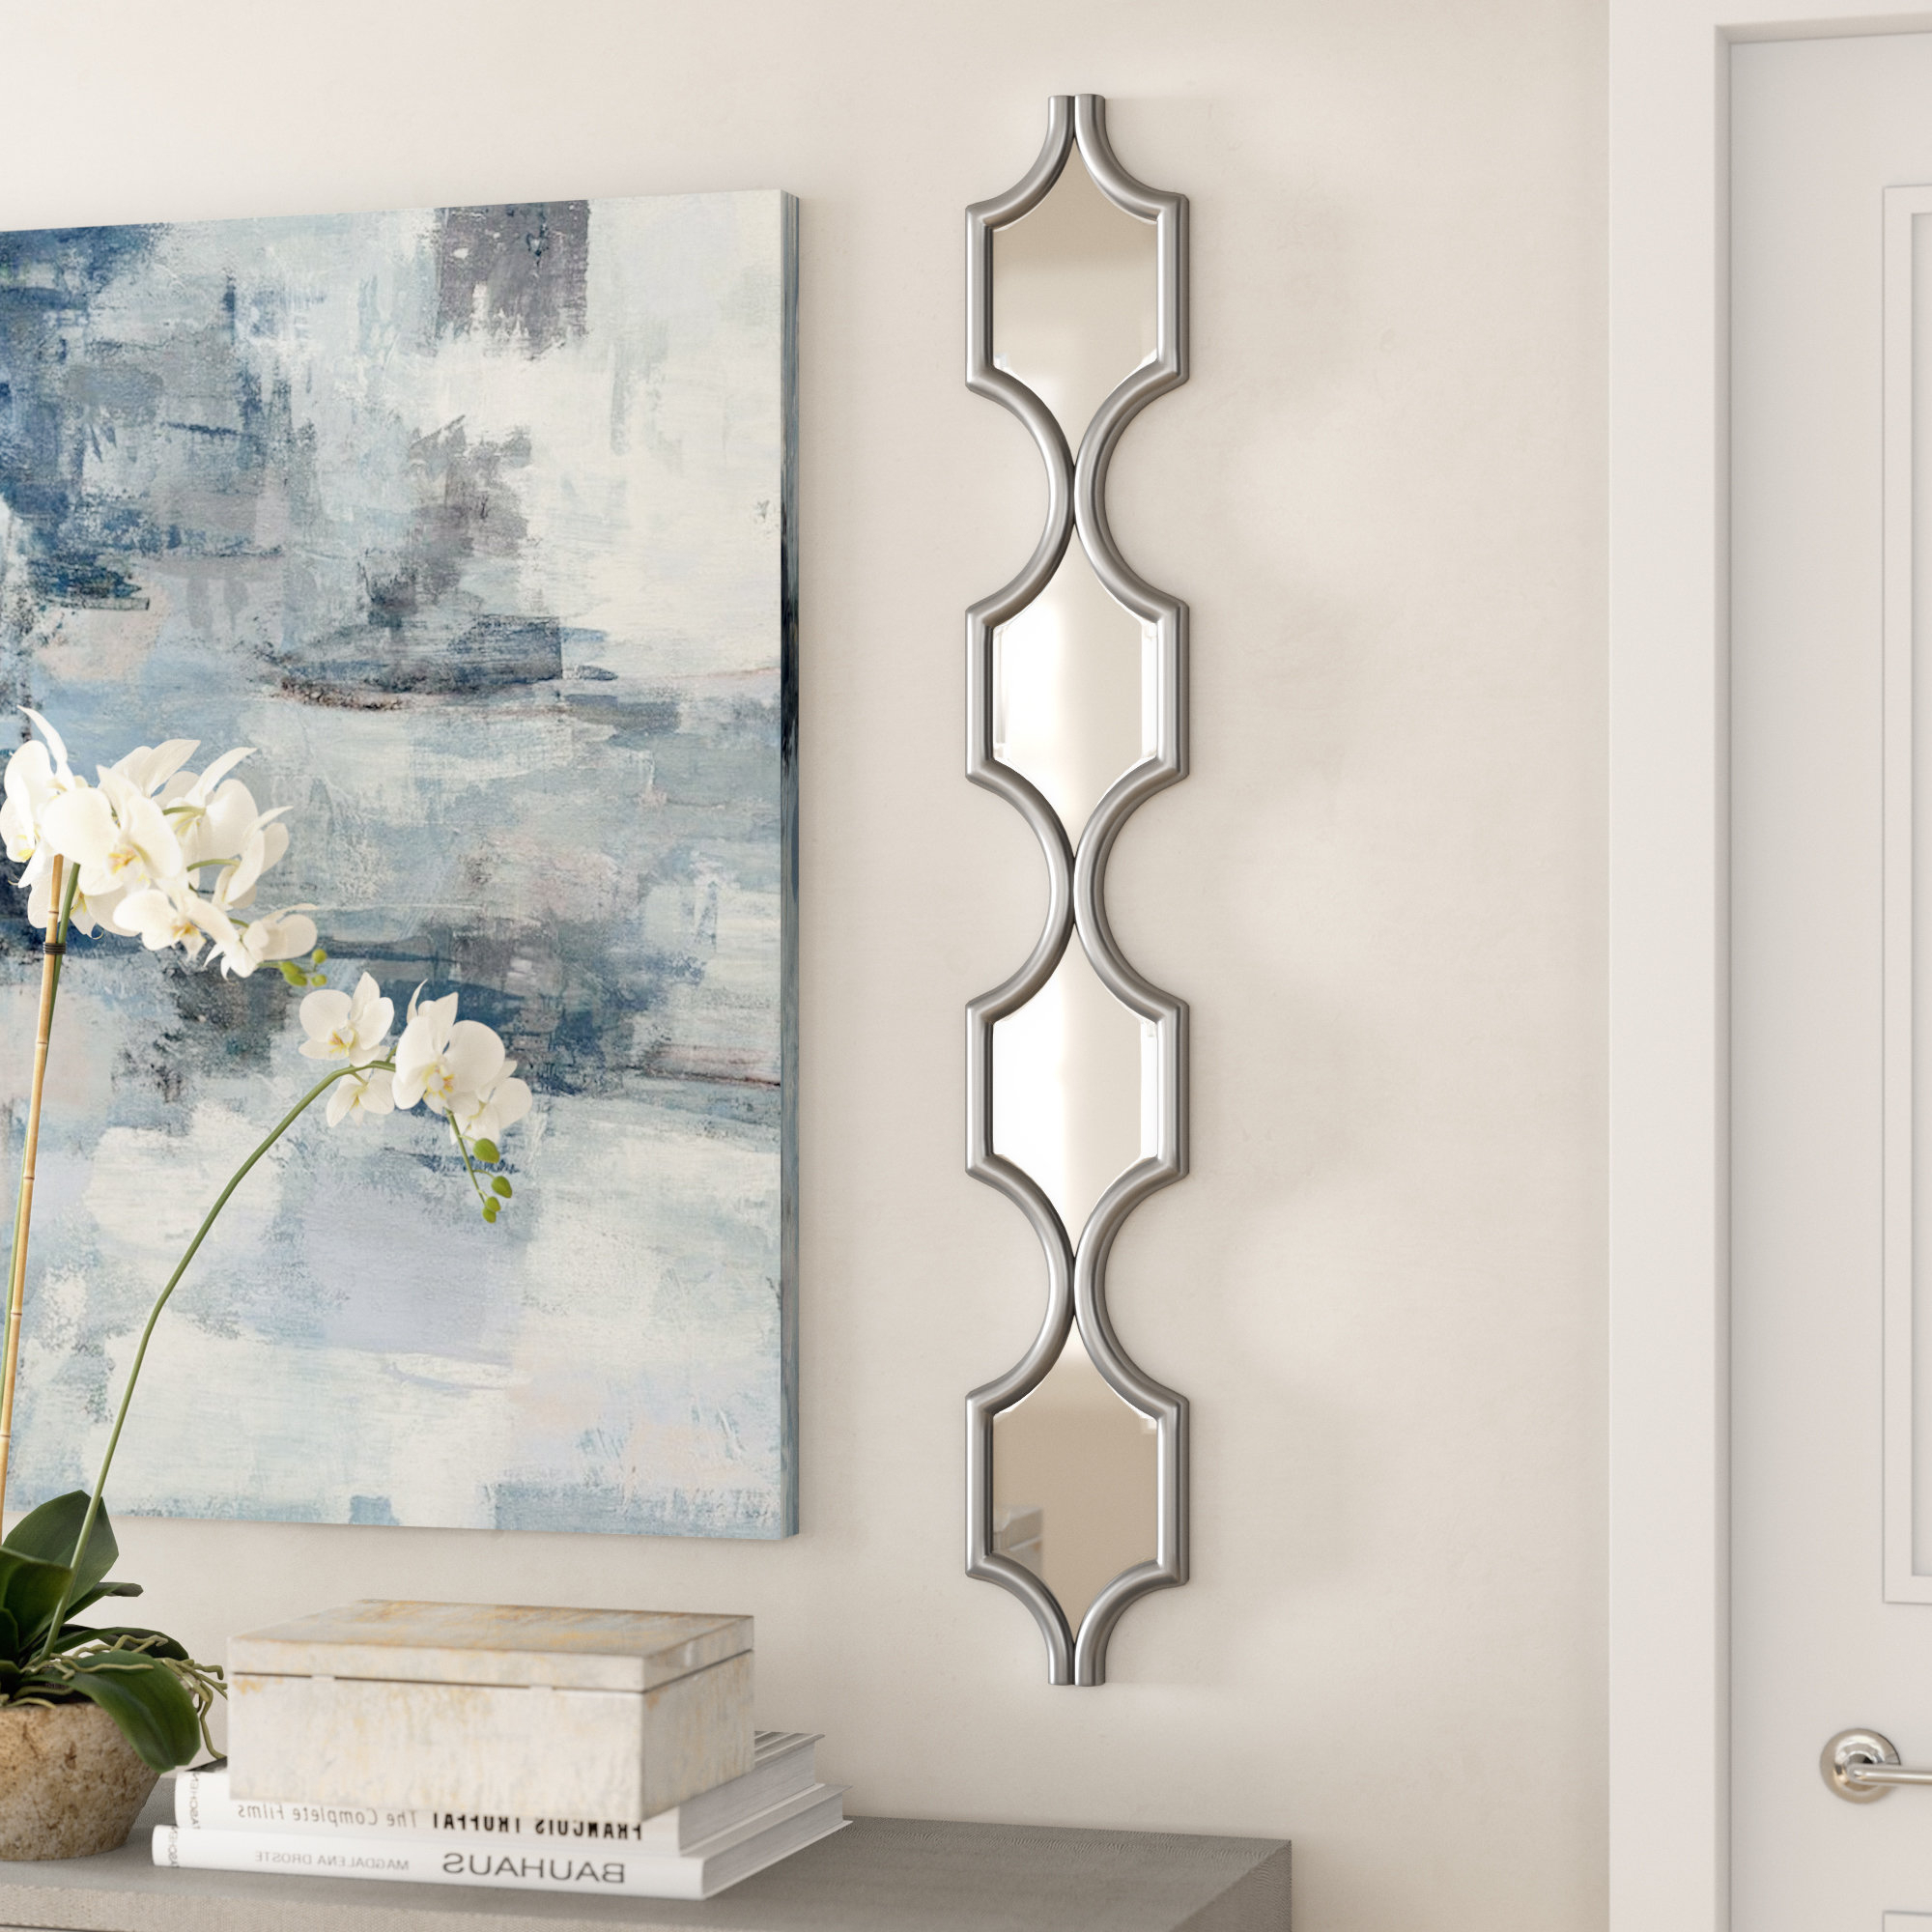 Most Recently Released Vertical Metal Frame Wall Mirror Within Metal Frame Wall Mirrors (View 17 of 20)